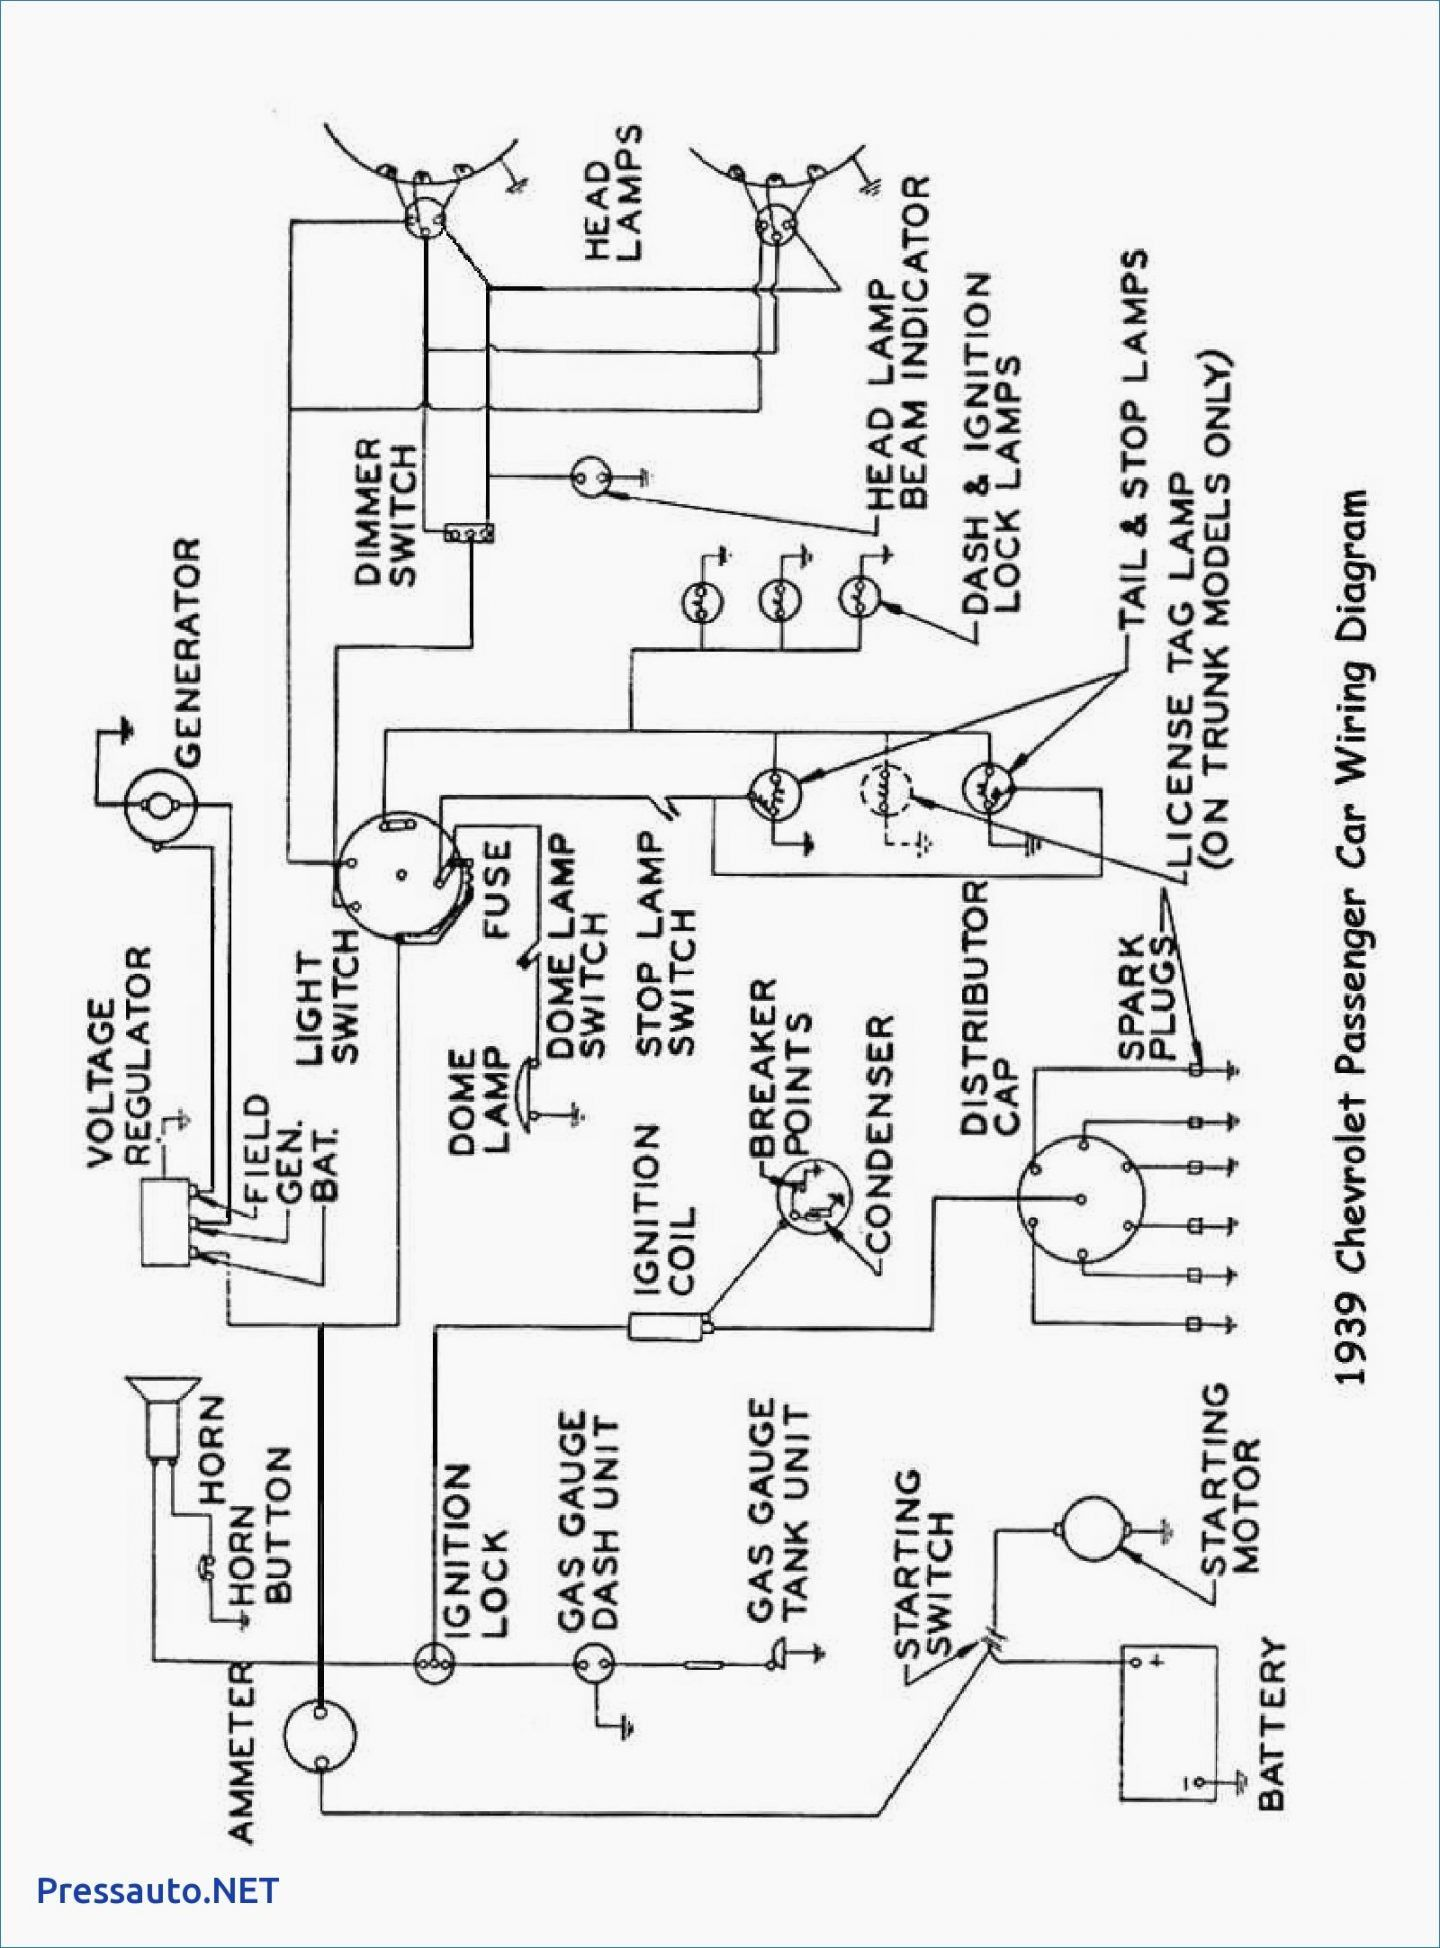 Motor Inverter Wiring Diagram